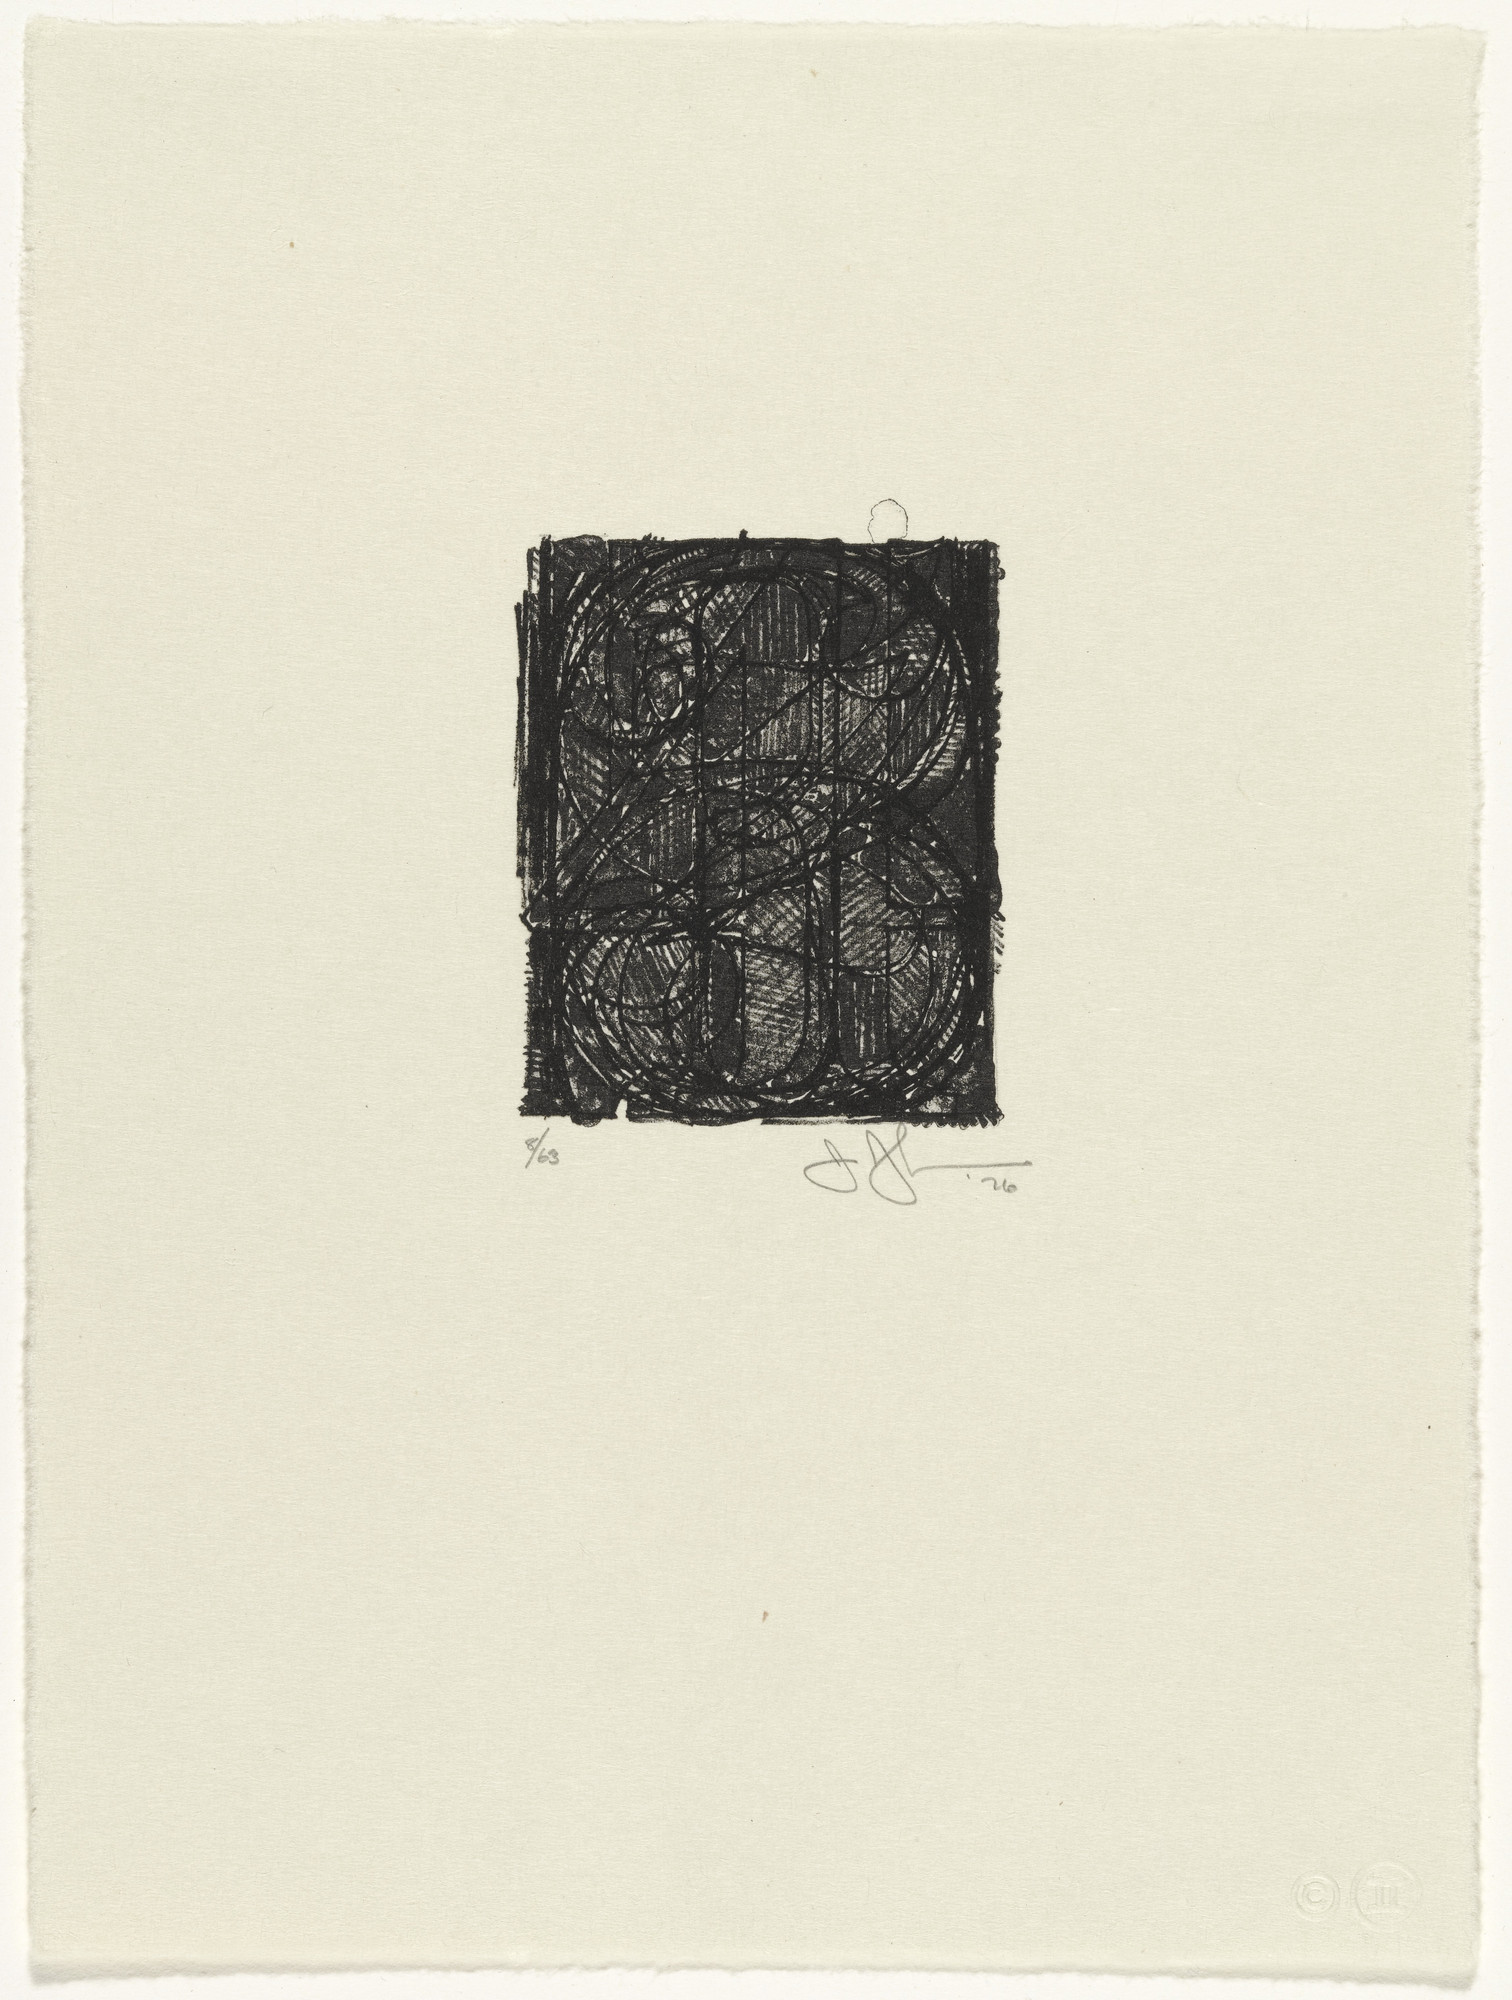 Jasper Johns. 0 through 9. 1976